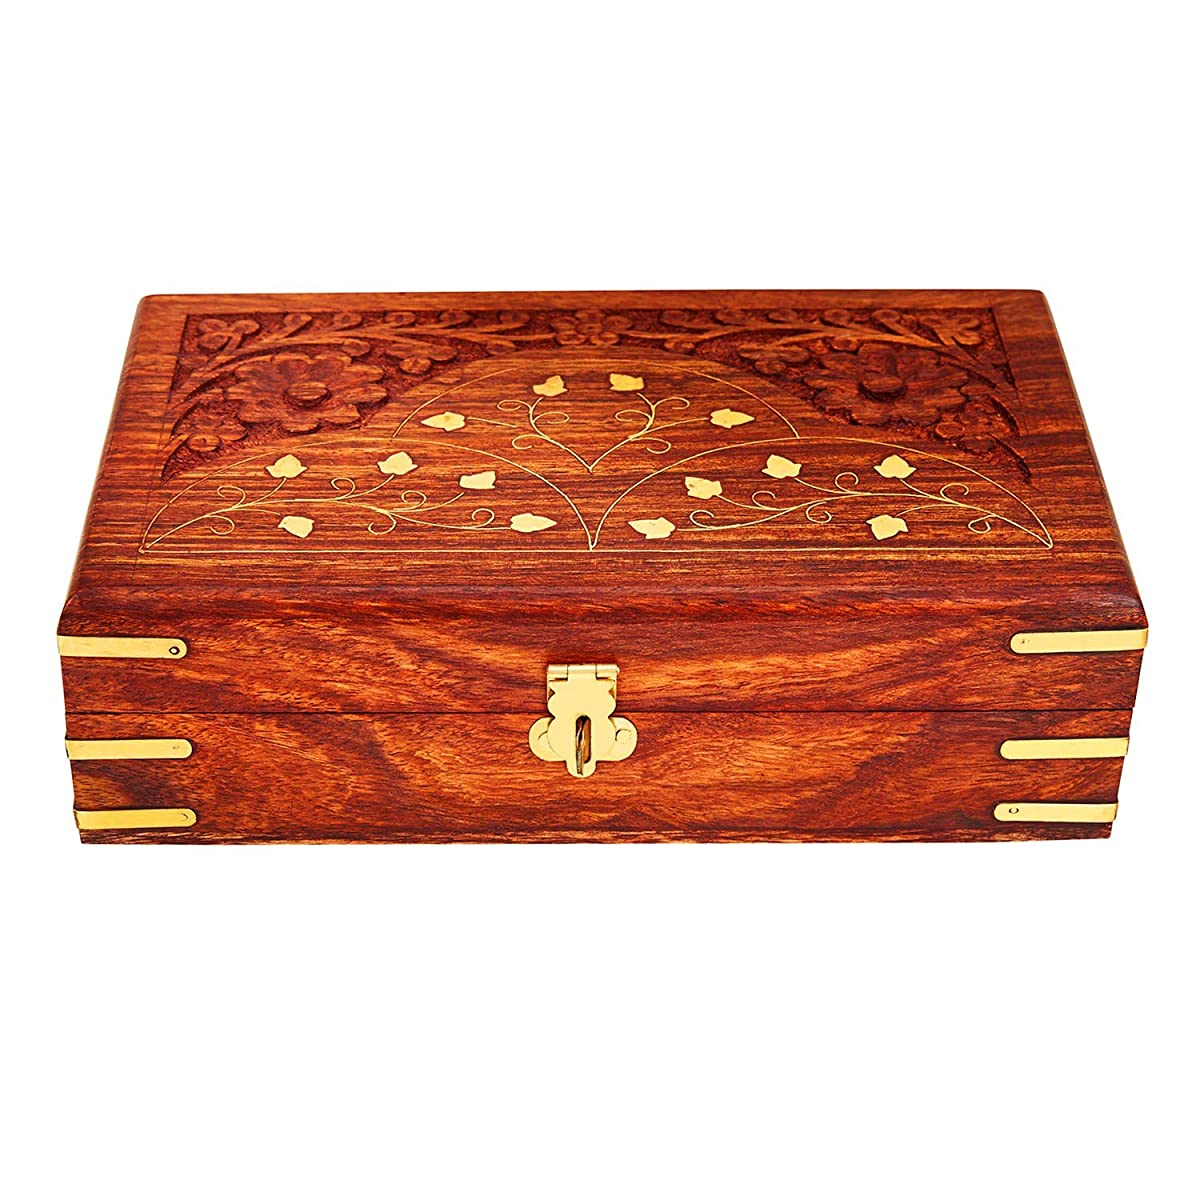 Handmade Wooden Jewelry Box With Free Lock Key Keepsake Box